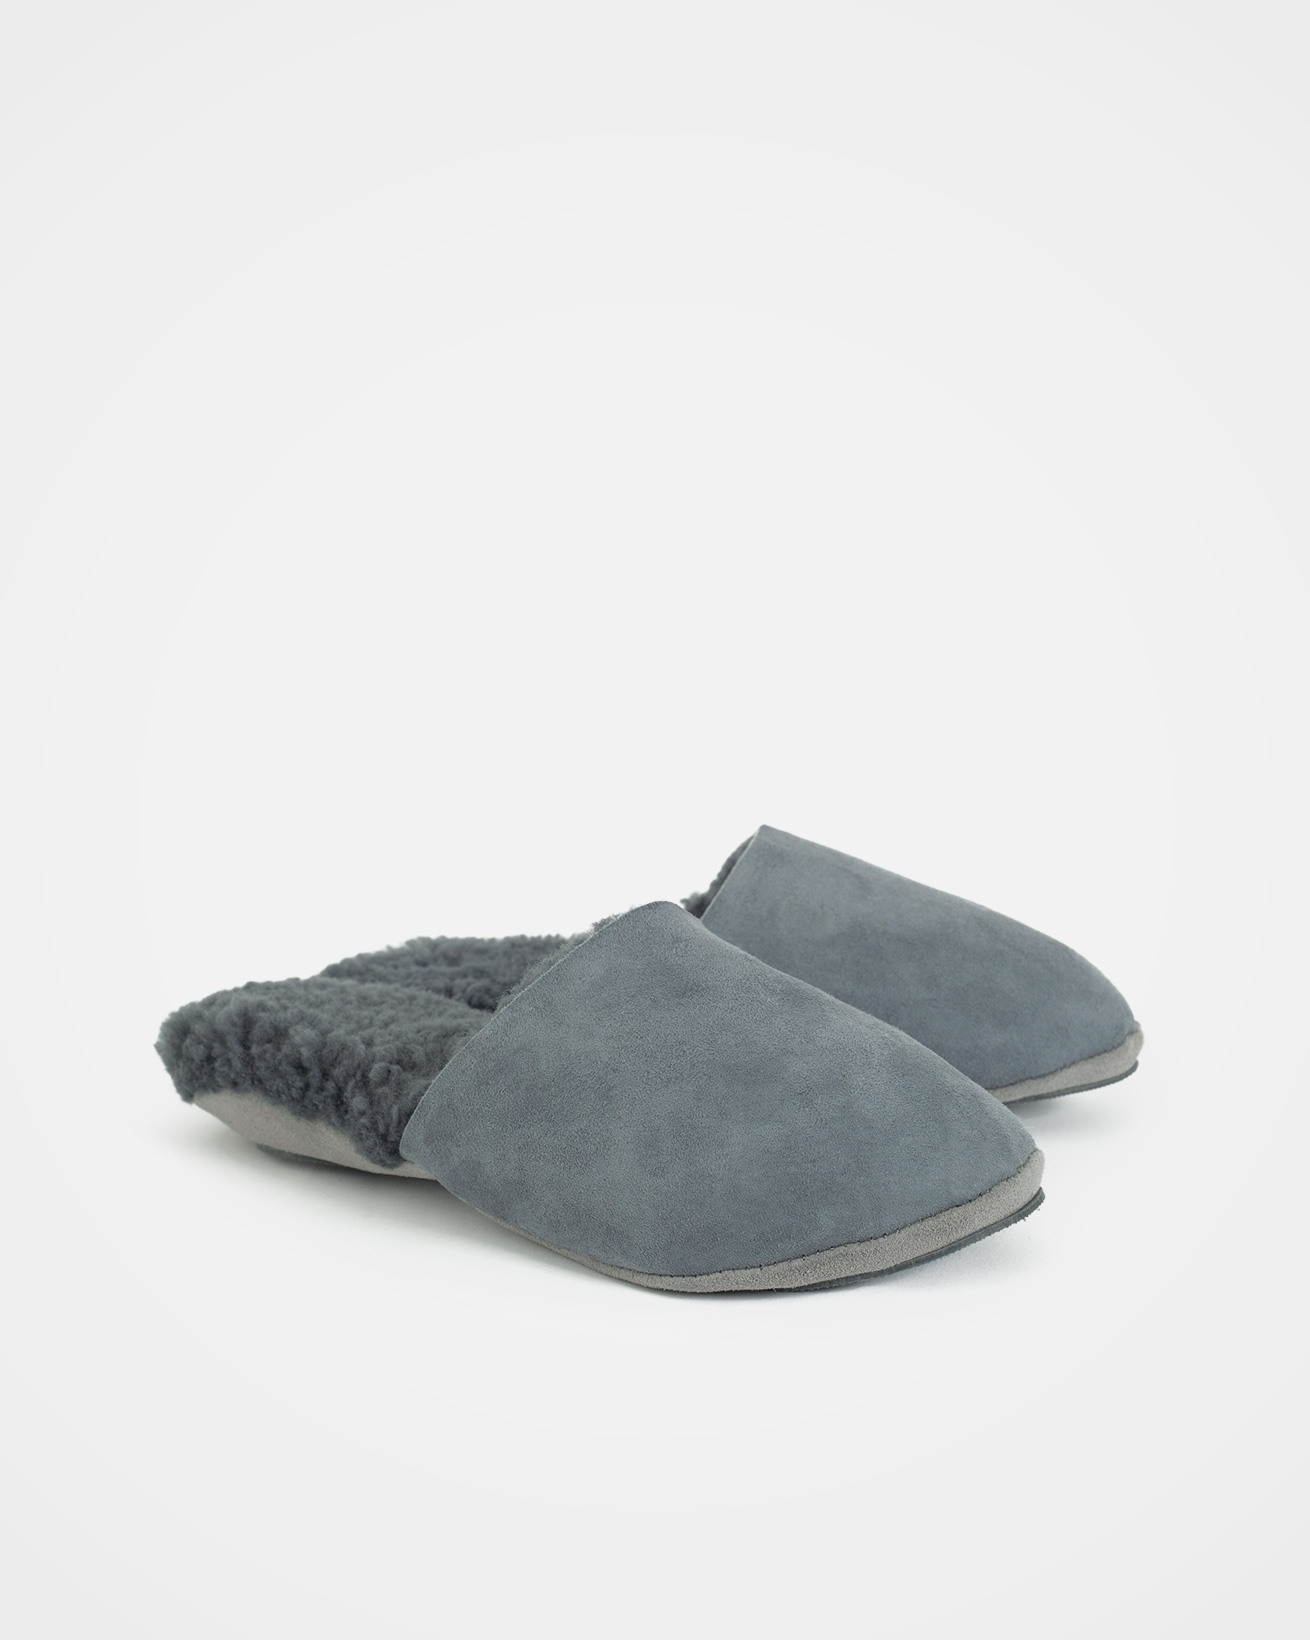 Turned Mules - Size 4 - Dark Grey - 1593